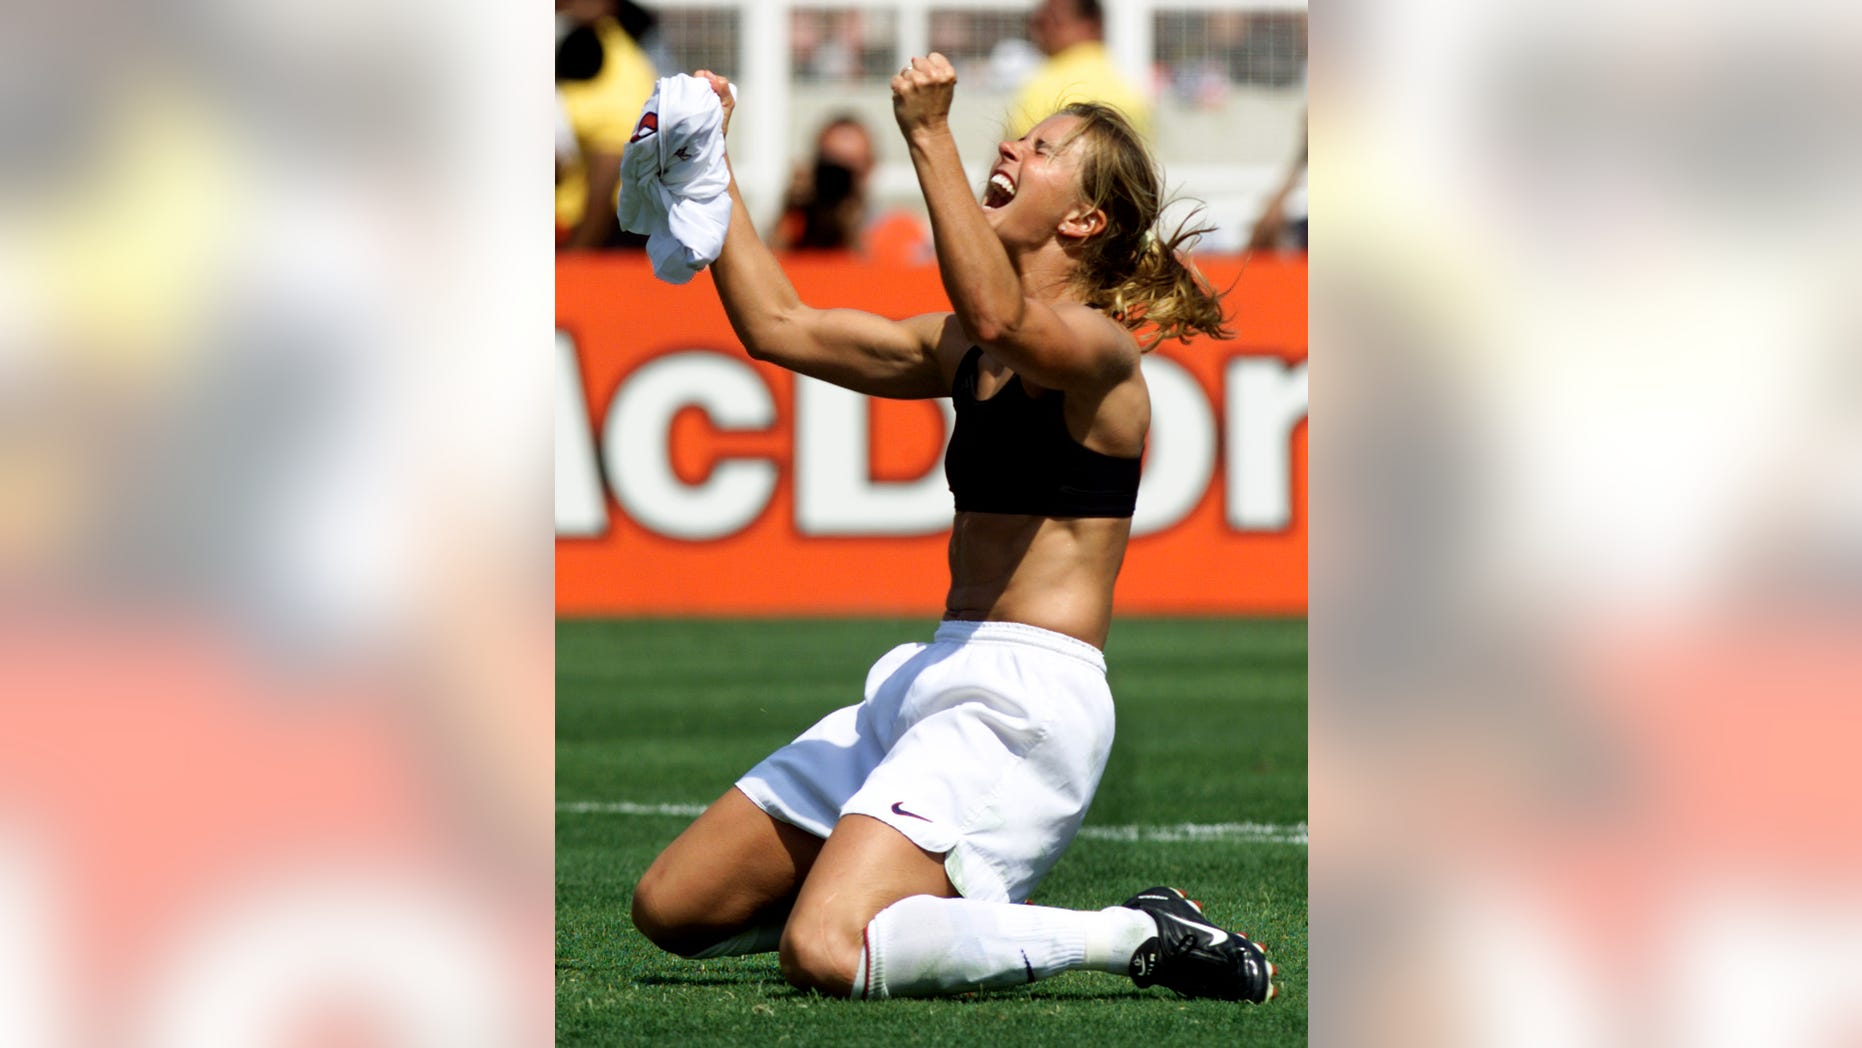 Brandi Chastain celebrates her winning penalty kick to defeat China 5-4 at the Women's World Cup soccer final between the two countries, July 10, 1999 at the Rose Bowl.